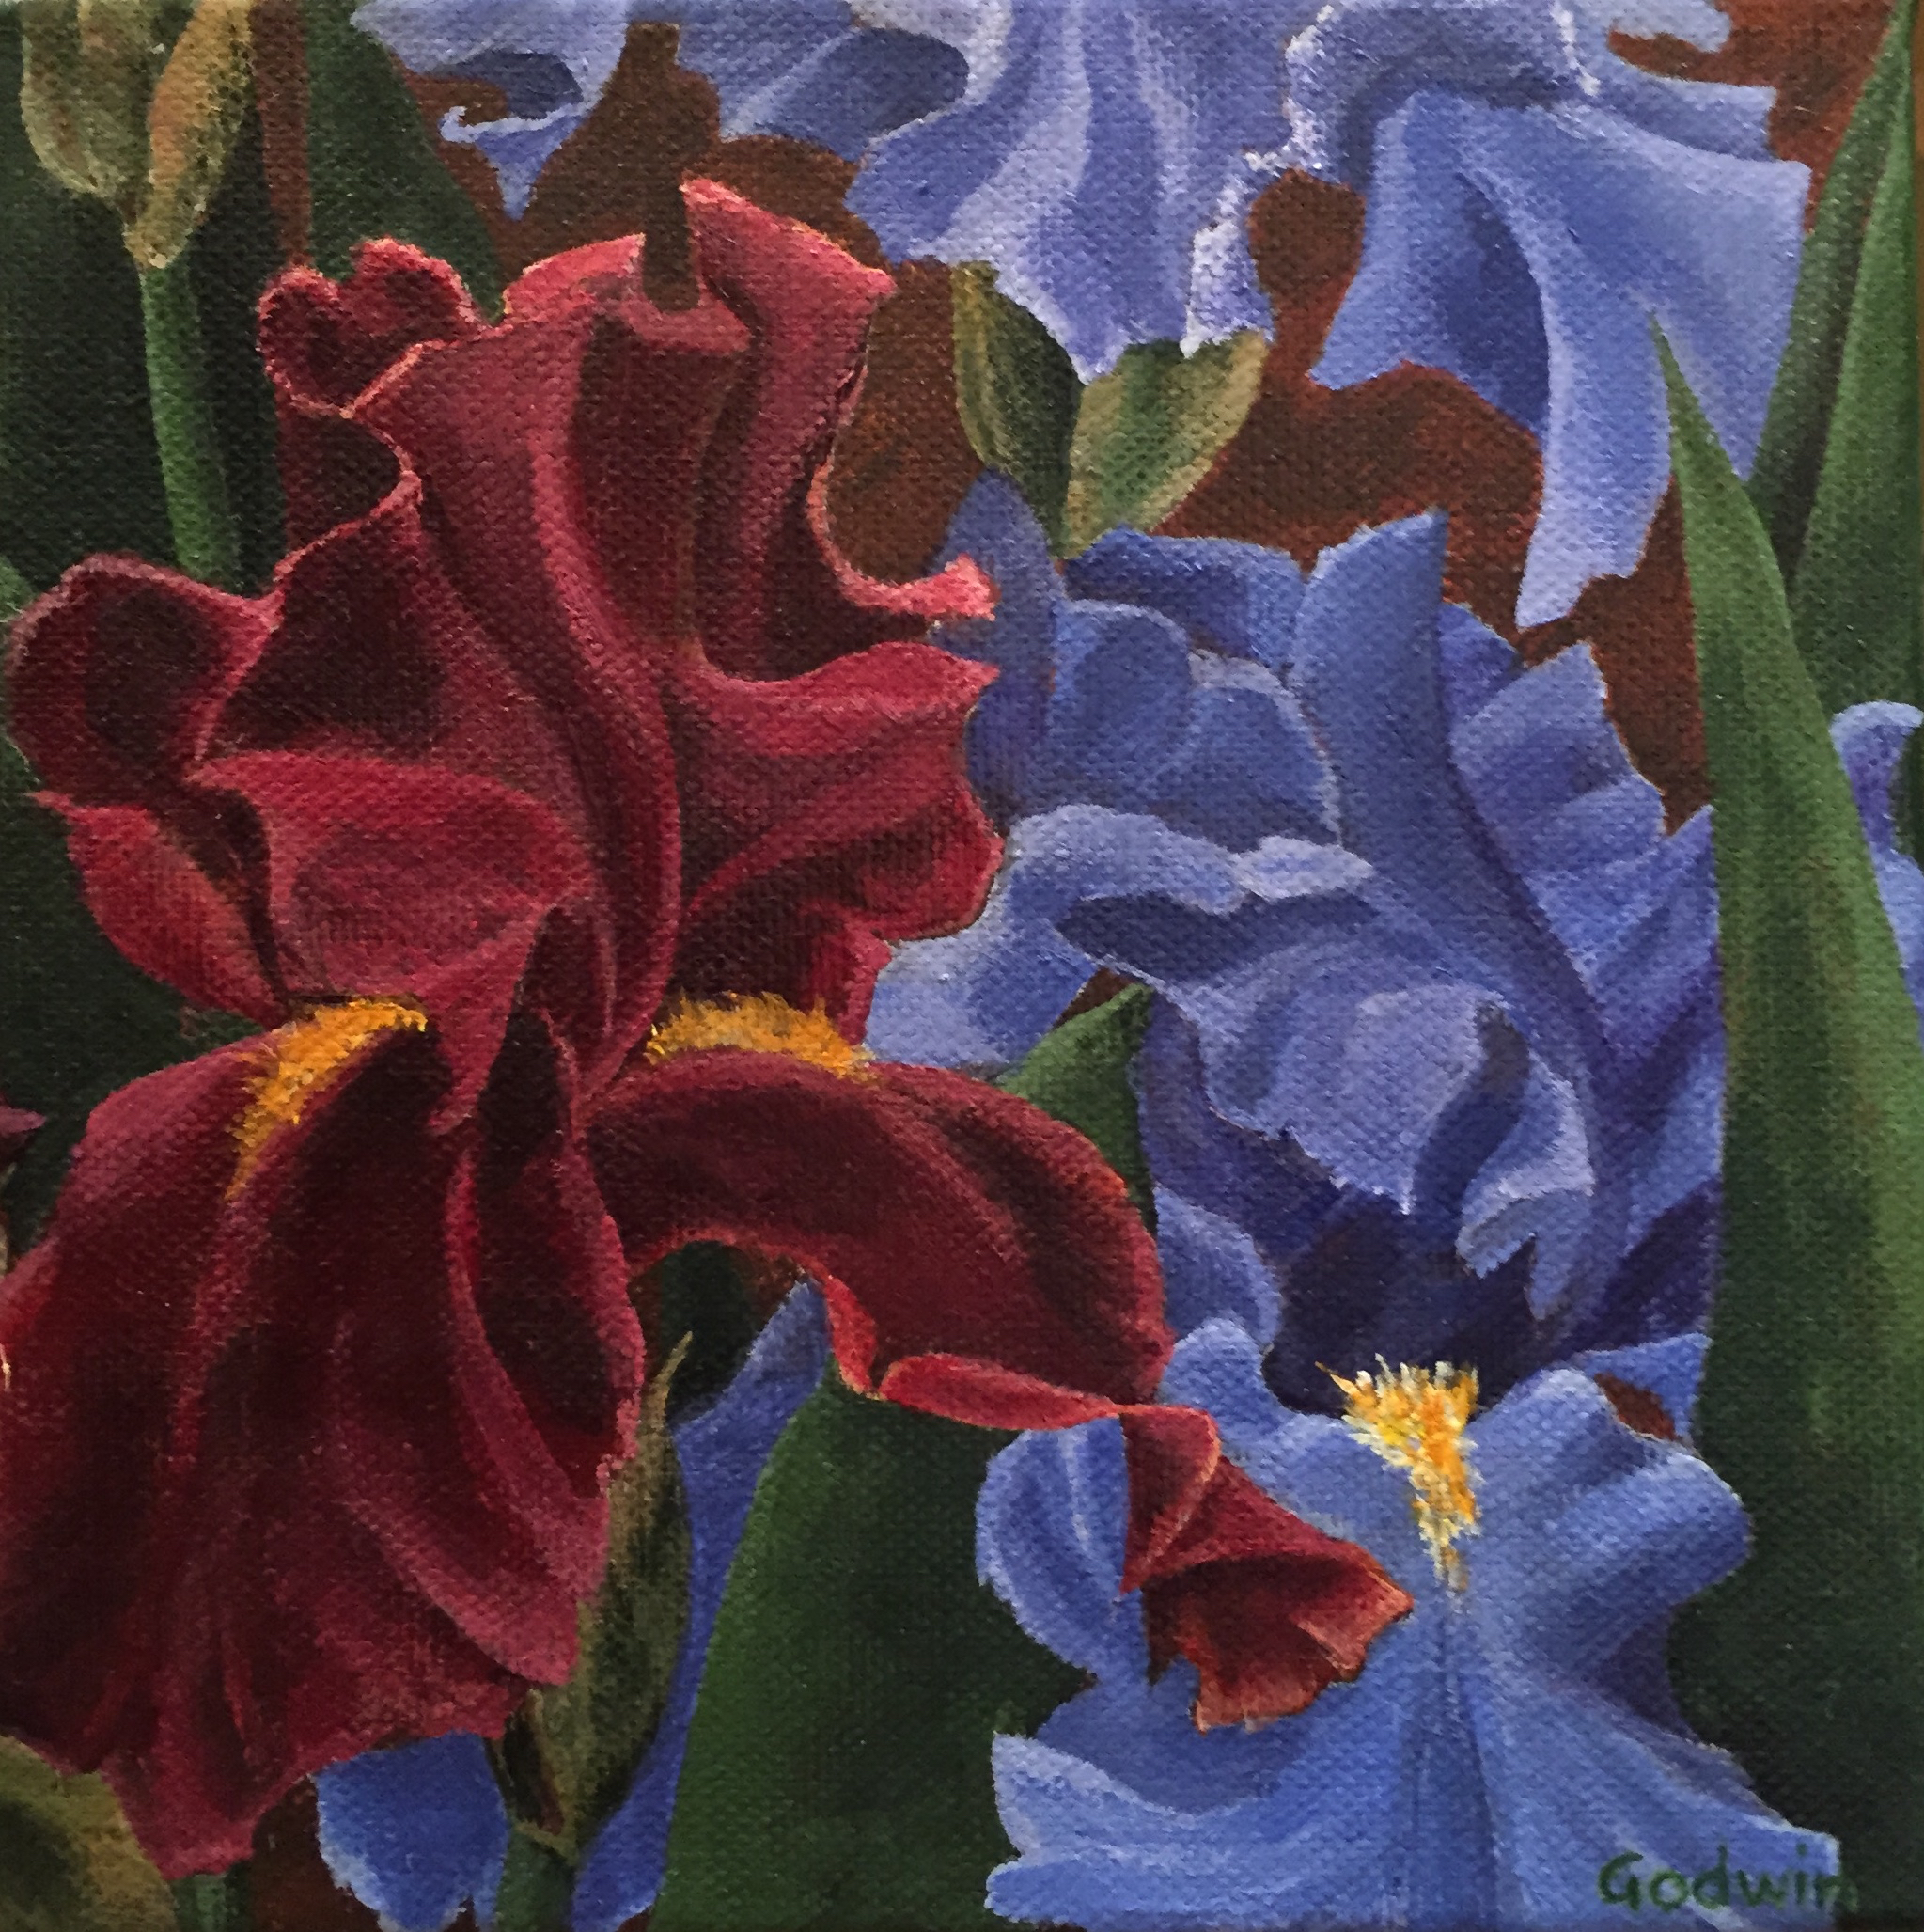 Flower Studies-Jayhawk Irises